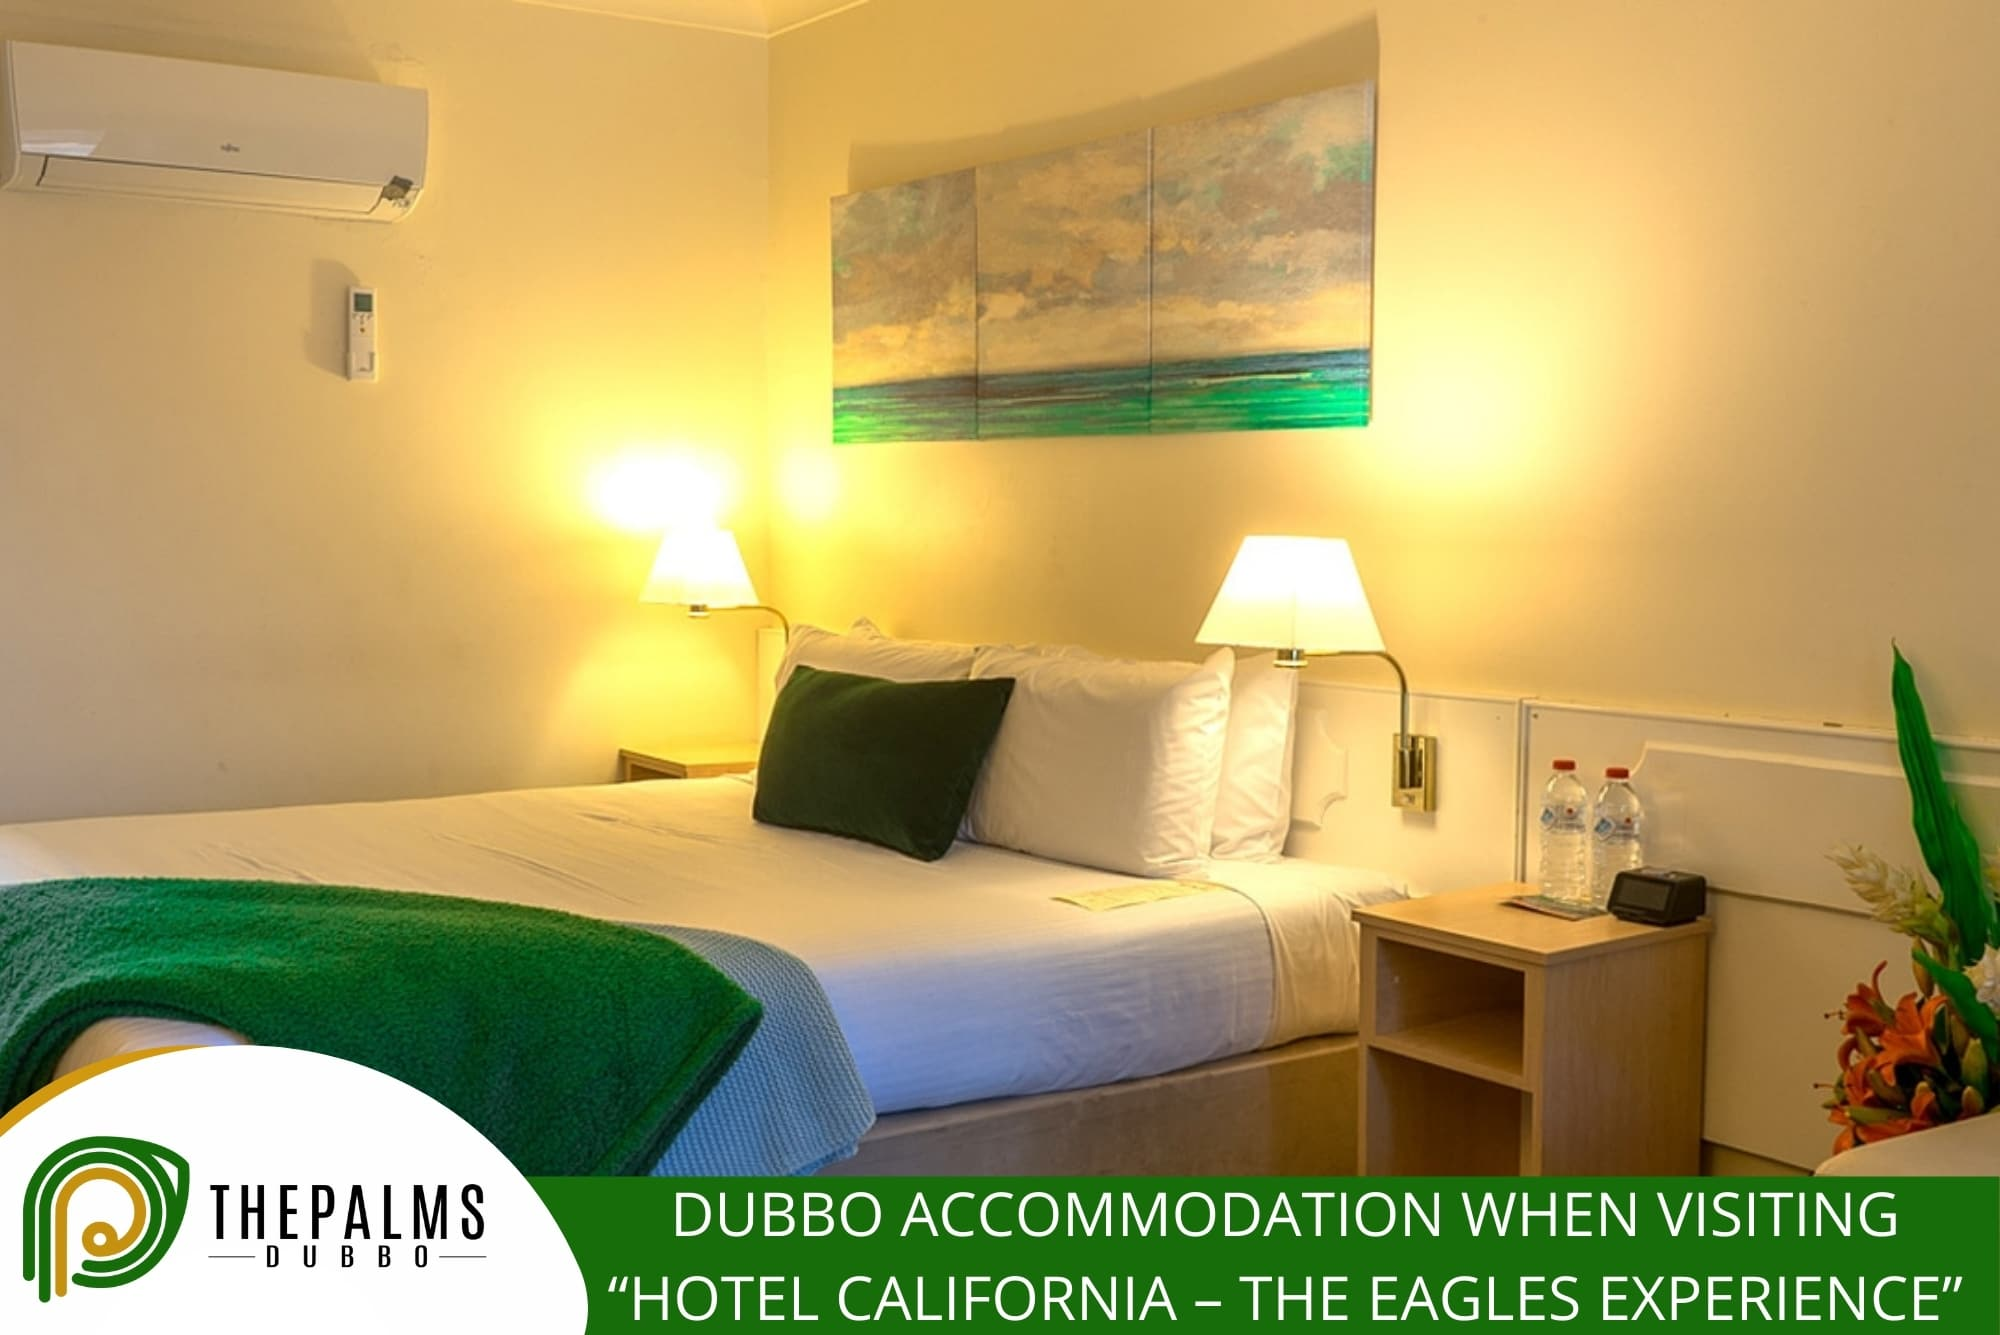 """Dubbo Accommodation When Visiting """"Hotel California – The Eagles Experience"""""""